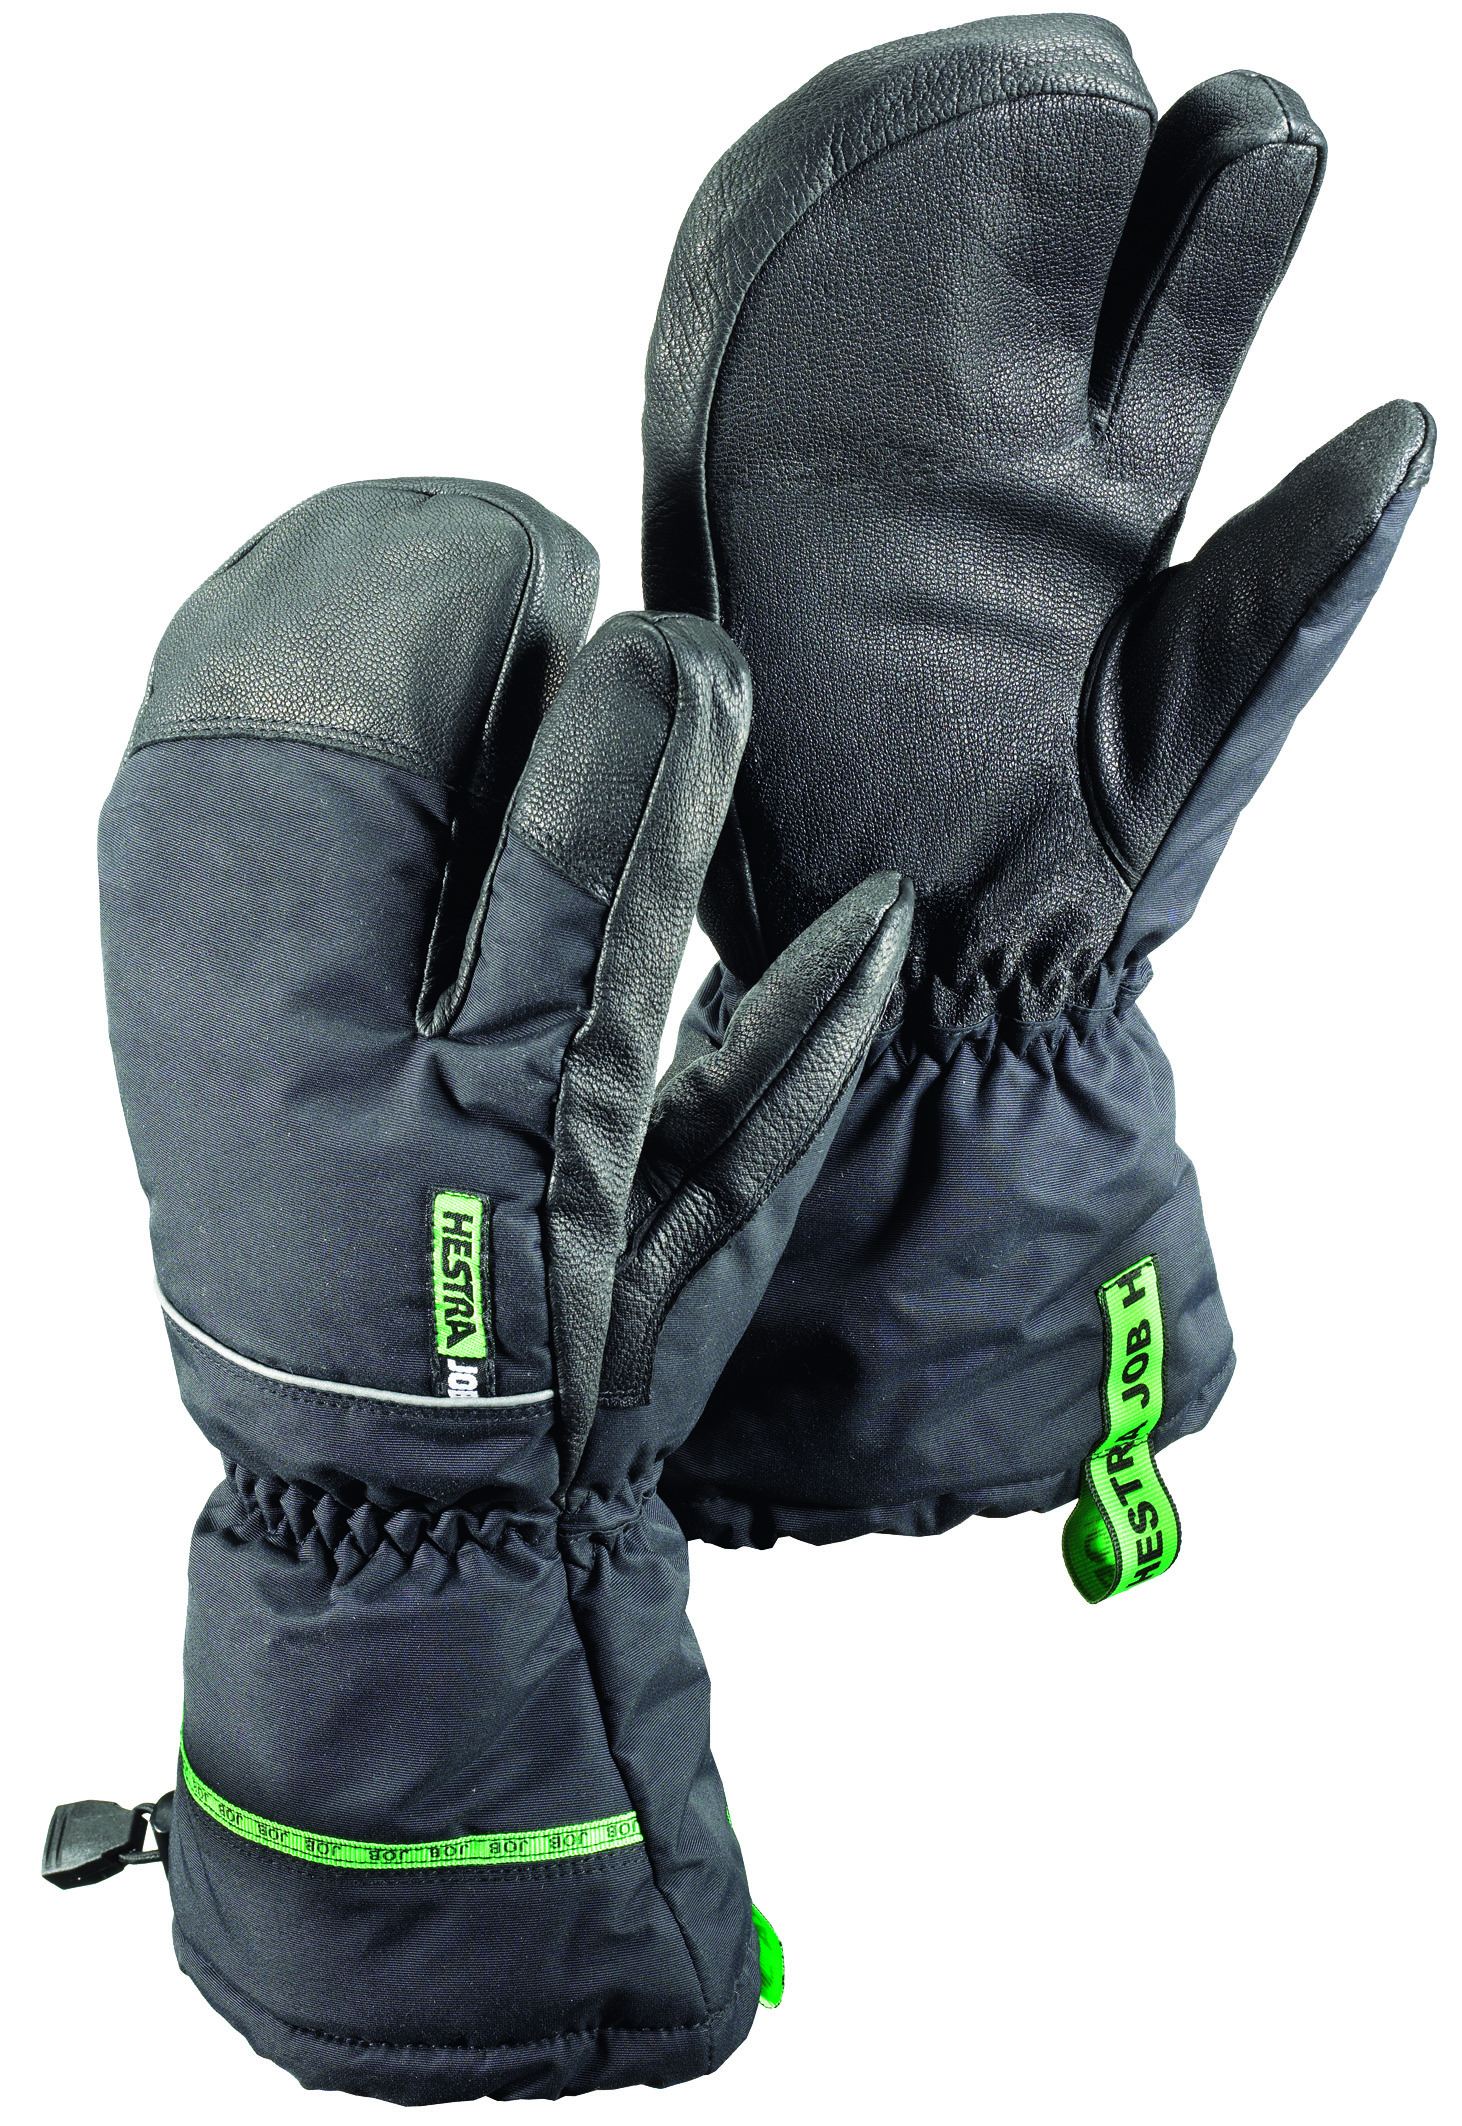 Leather work gloves ebay - Gore Tex Pro 3 Finger Insulated Army Leather Work Gloves Black Green